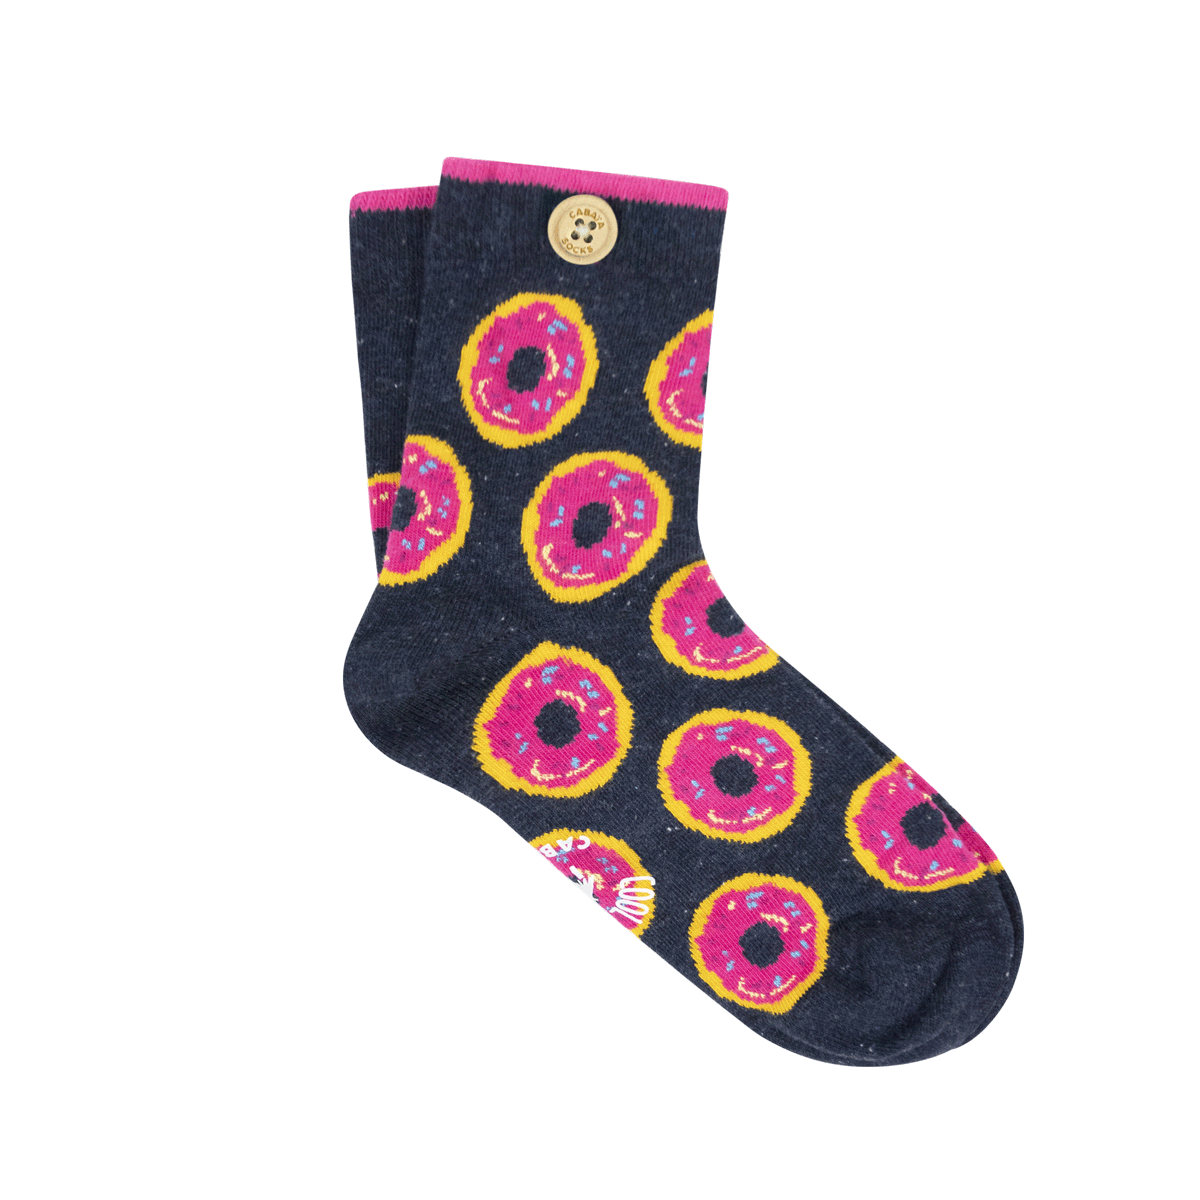 unloosable-socks-button-women-36-41-socks20-eva-bla